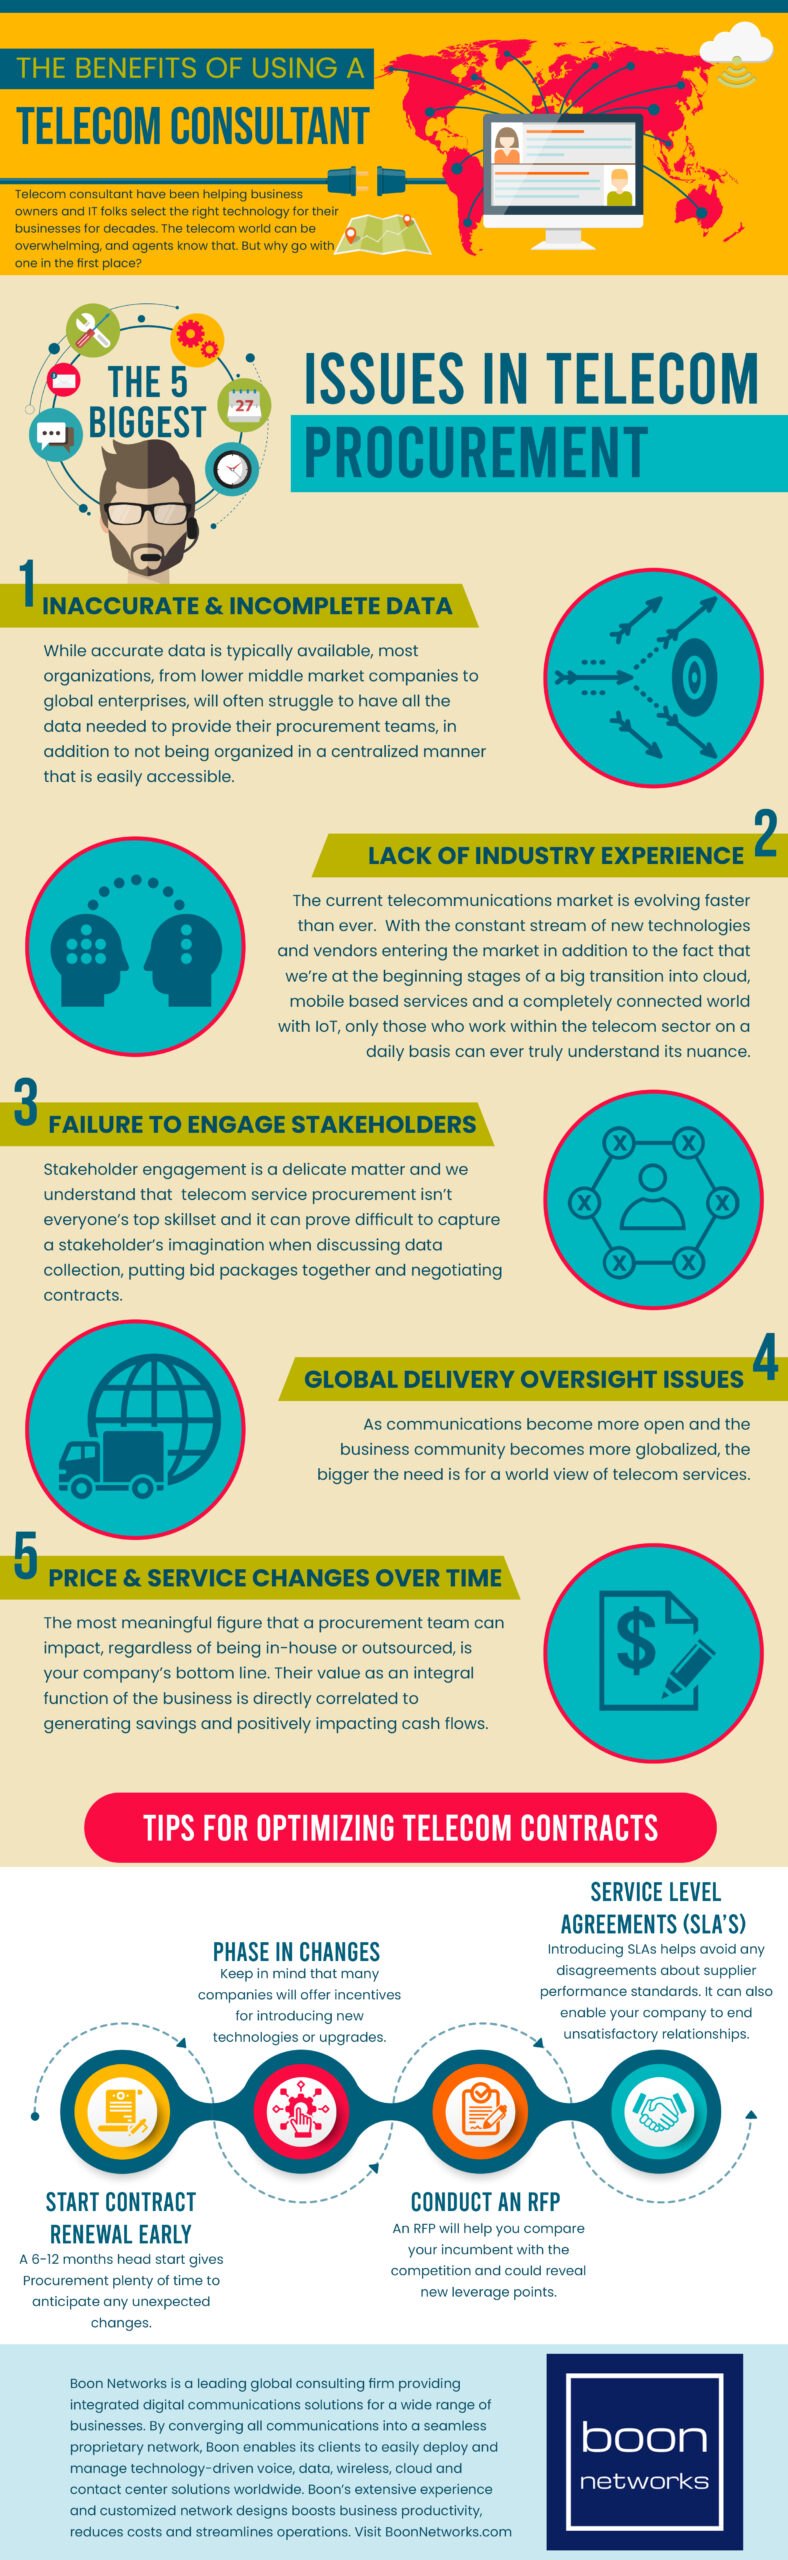 5 Biggest Issues in Telecom Procurement Infographic